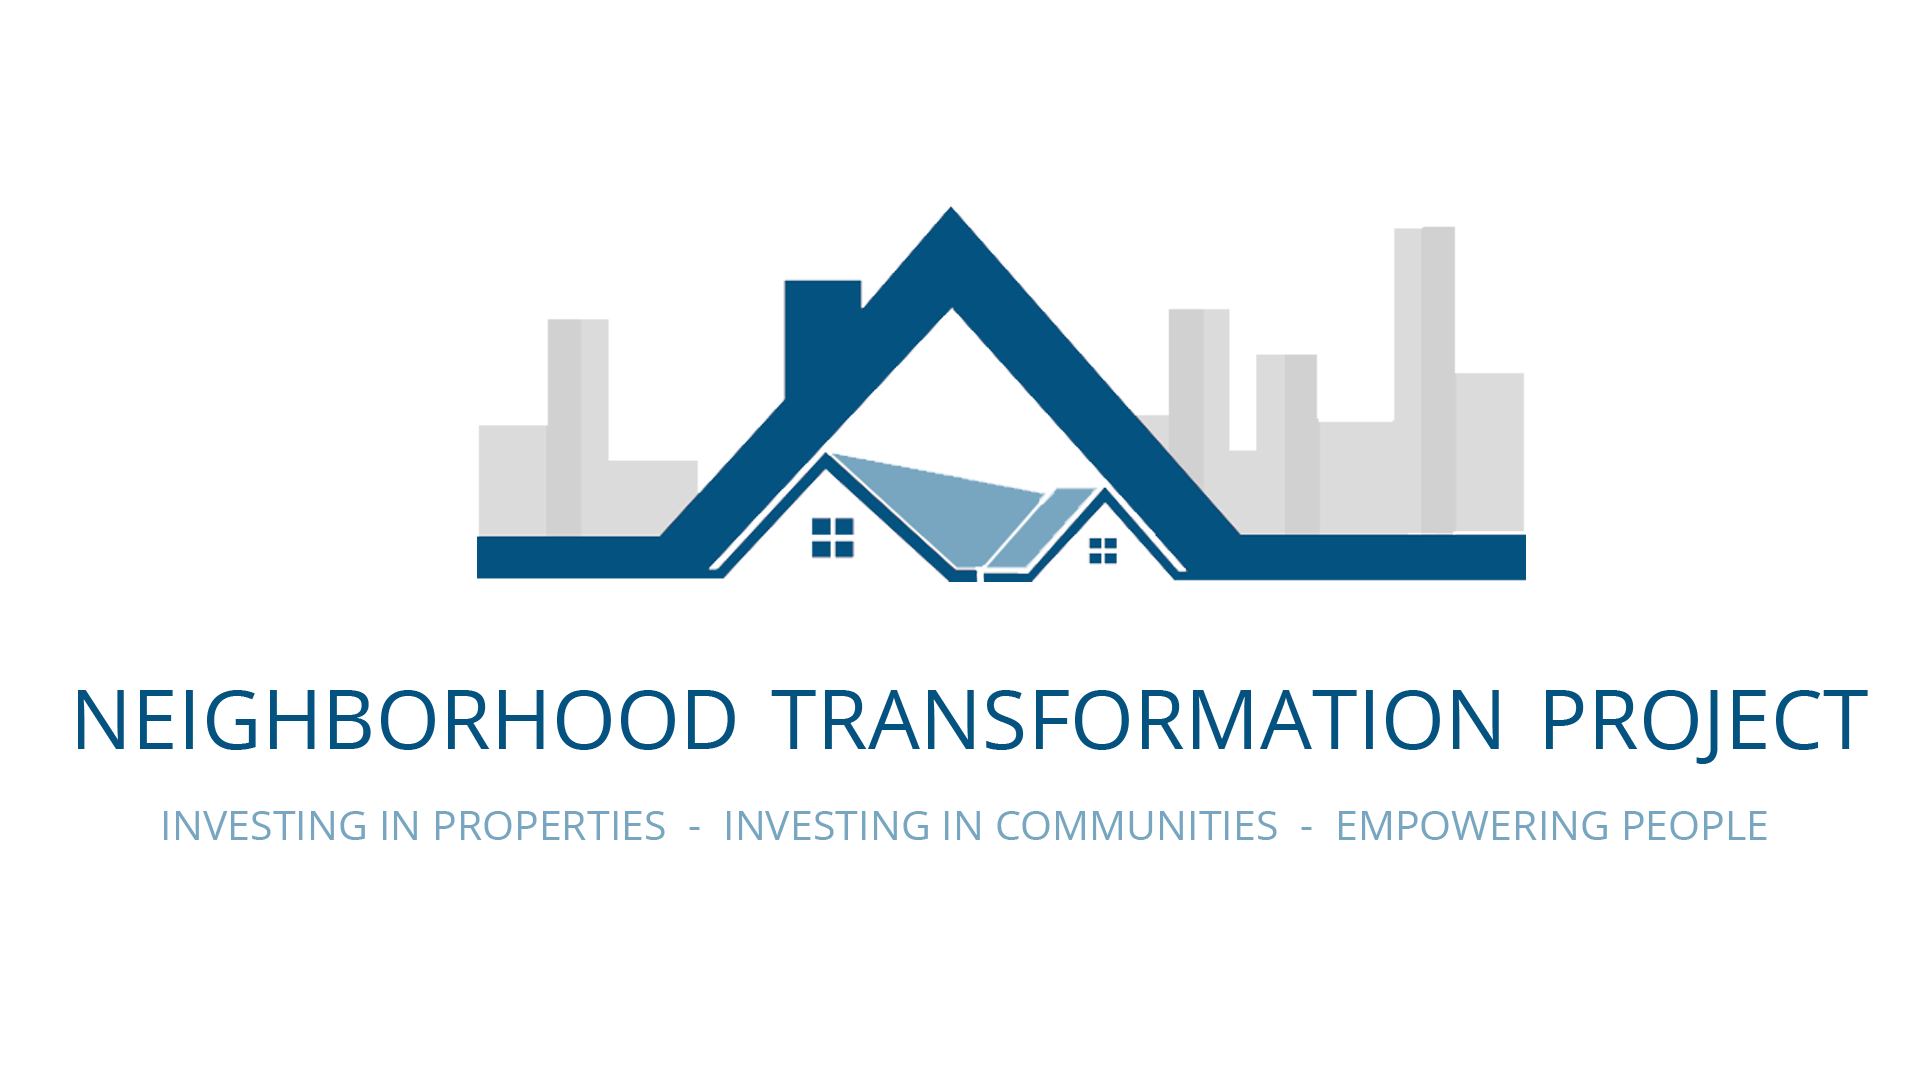 Neighborhood Transformation Project - Investing in Properties.  Investing in Communities.  Empowering People.